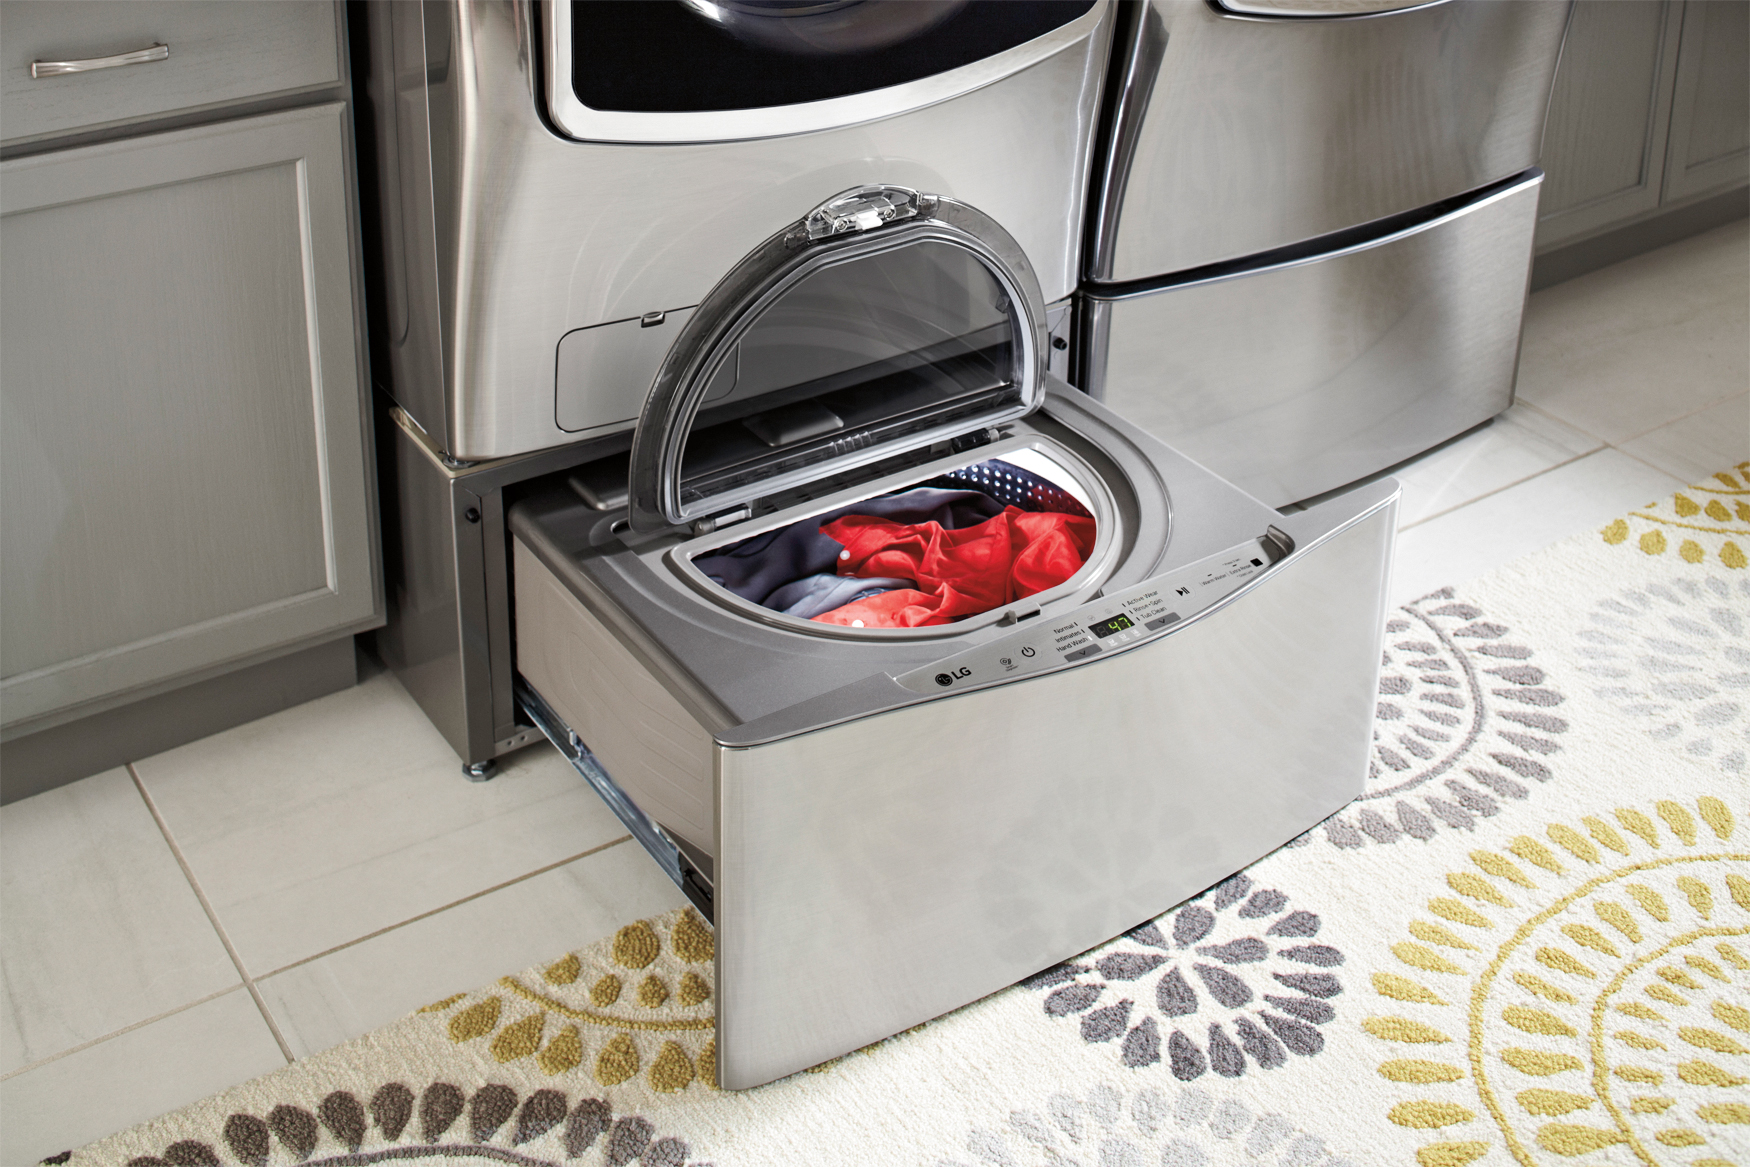 Best Buy Has Front Loading LG washers and SideKick on sale! @LGUS @BestBuy